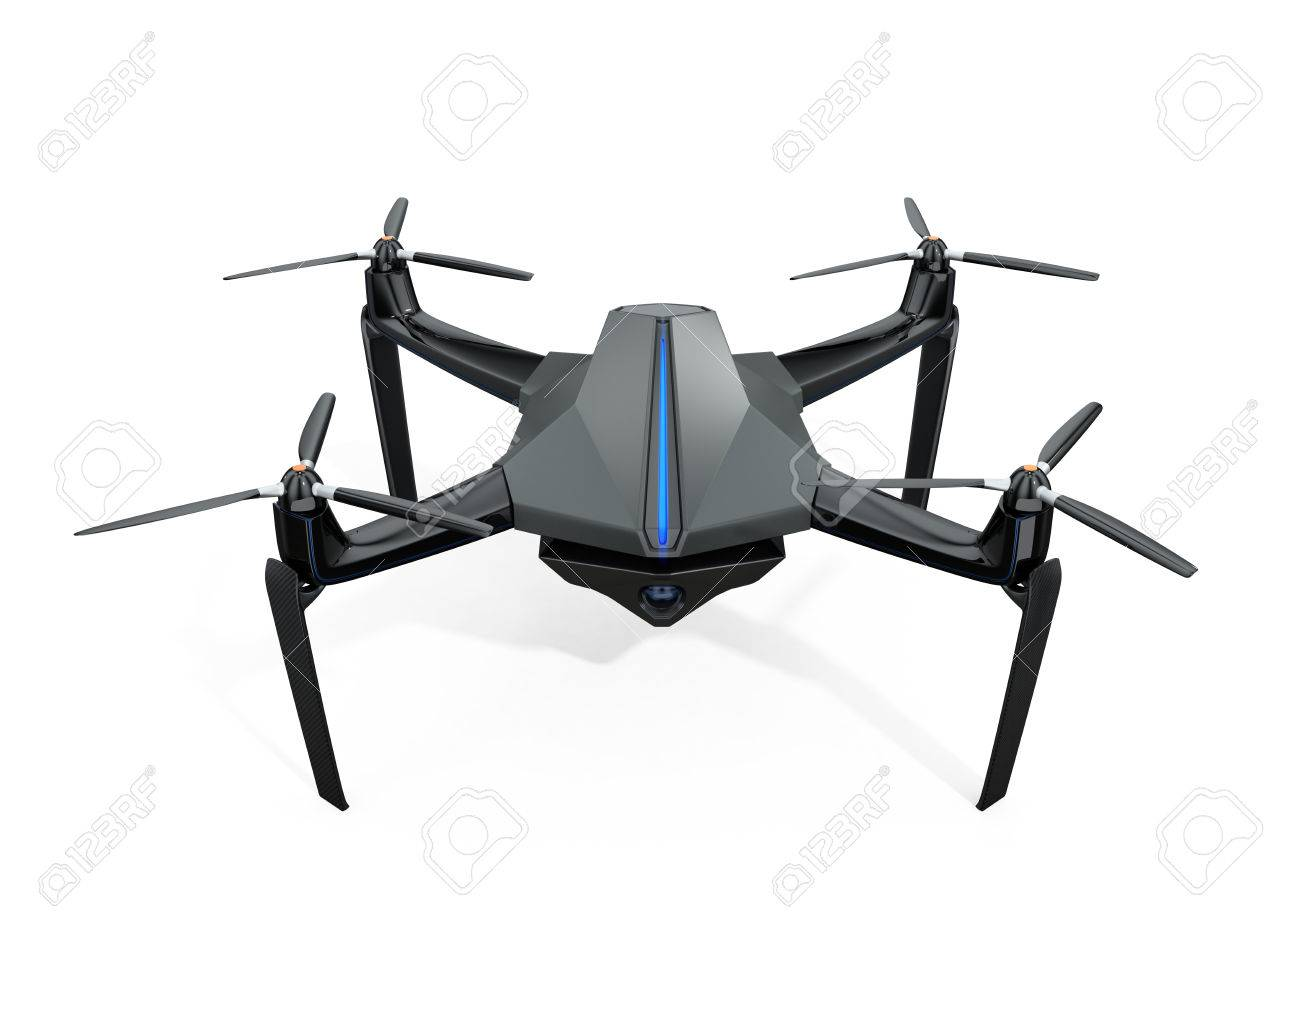 Front View Of Surveillance Drone Isolated On White Background 3D Rendering Image Stock Photo